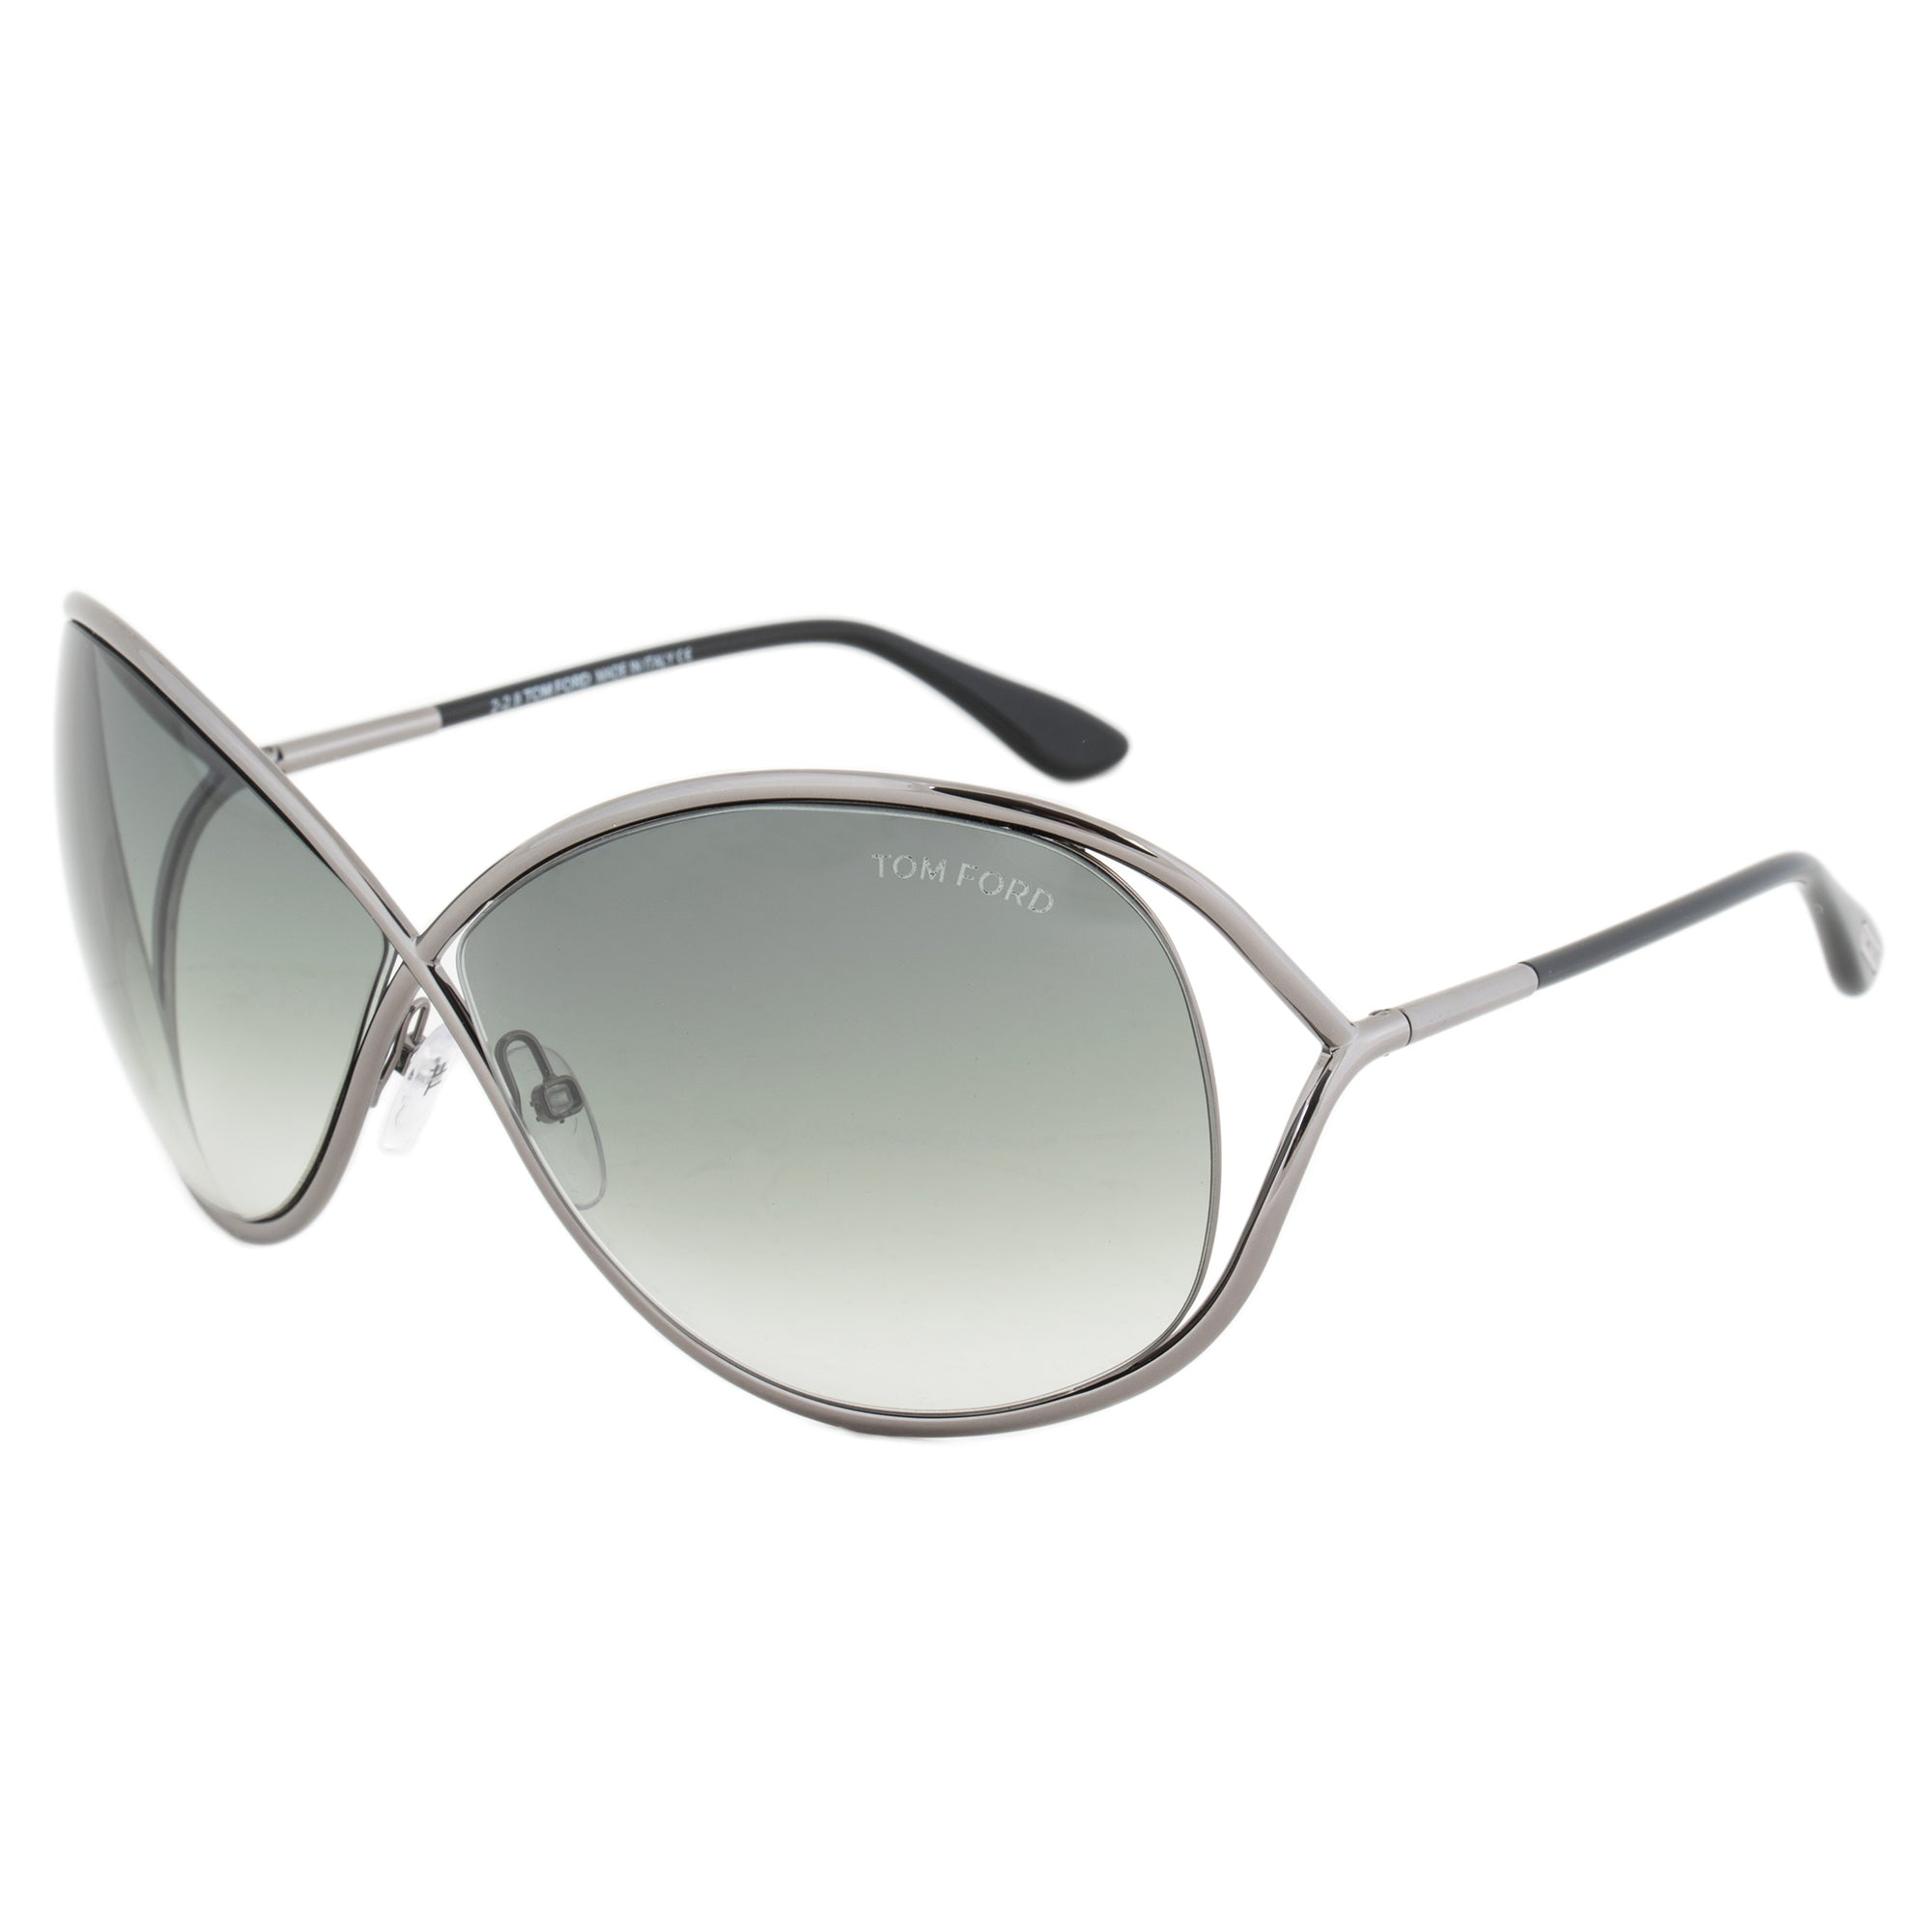 Tom Ford Miranda Sunglasses FT0130 08B | Gunmetal Frame | Dark Grey Gradient Lens